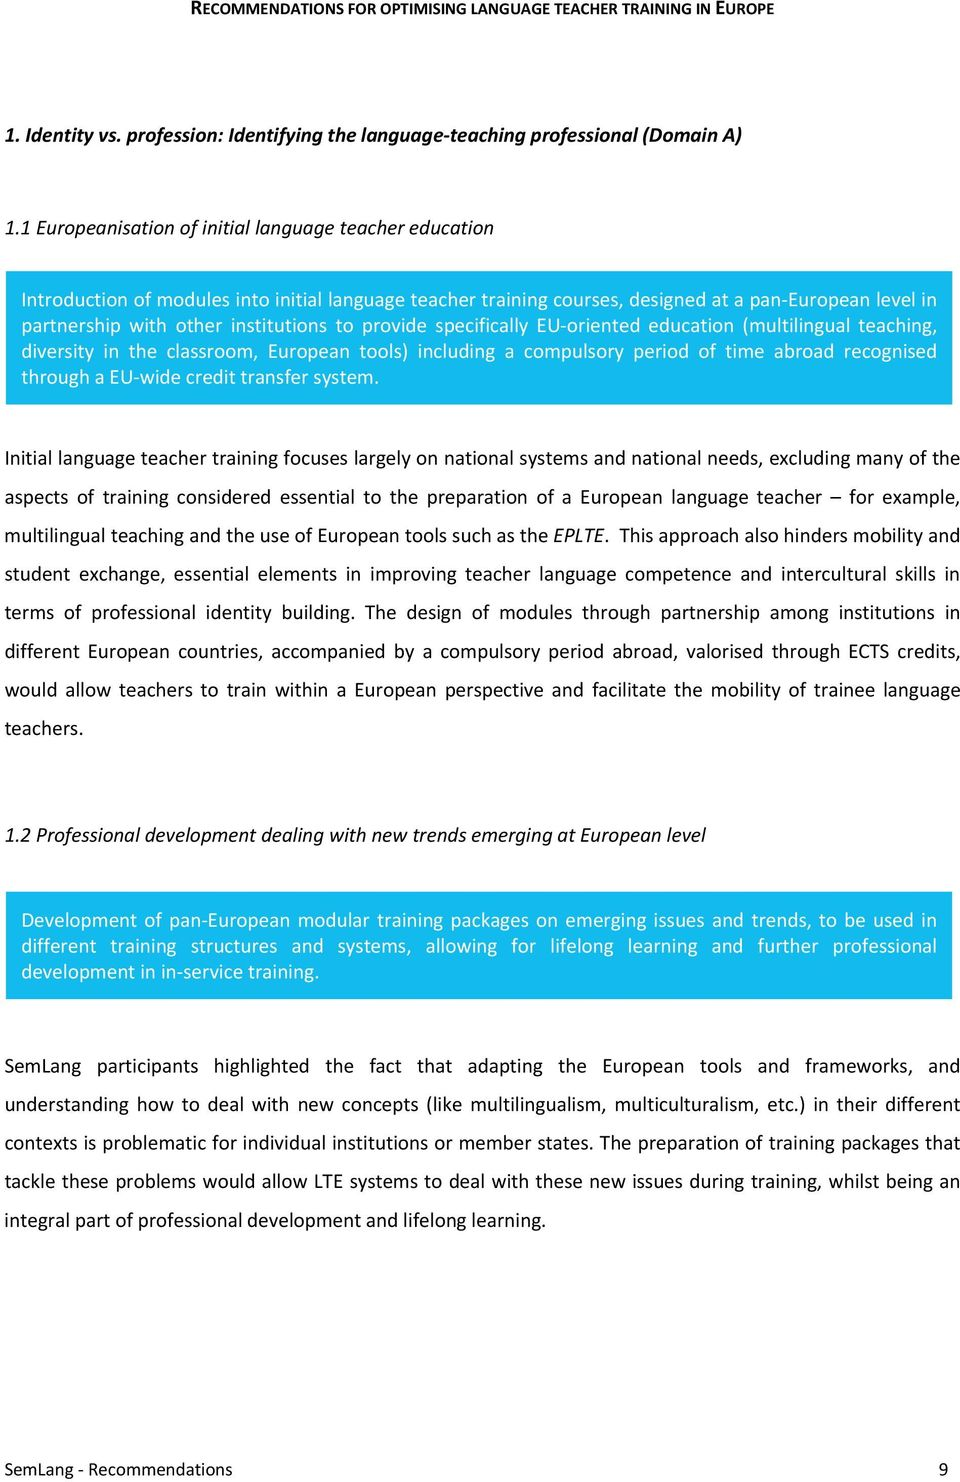 to provide specifically EU oriented education (multilingual teaching, diversity in the classroom, European tools) including a compulsory period of time abroad recognised through a EU wide credit